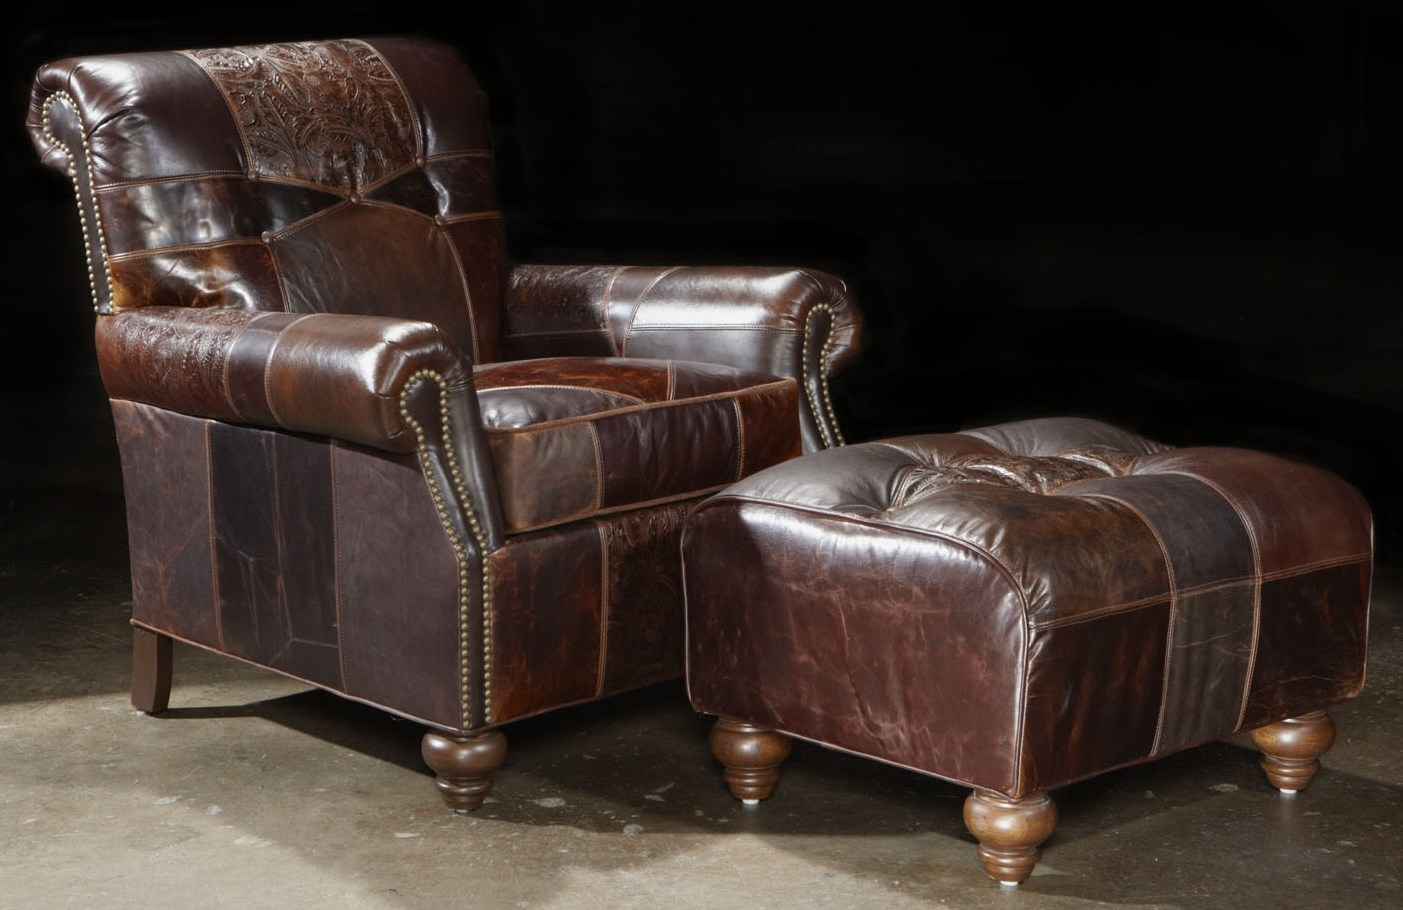 leather upholstered furniture 1 leather patches chair and ottoman